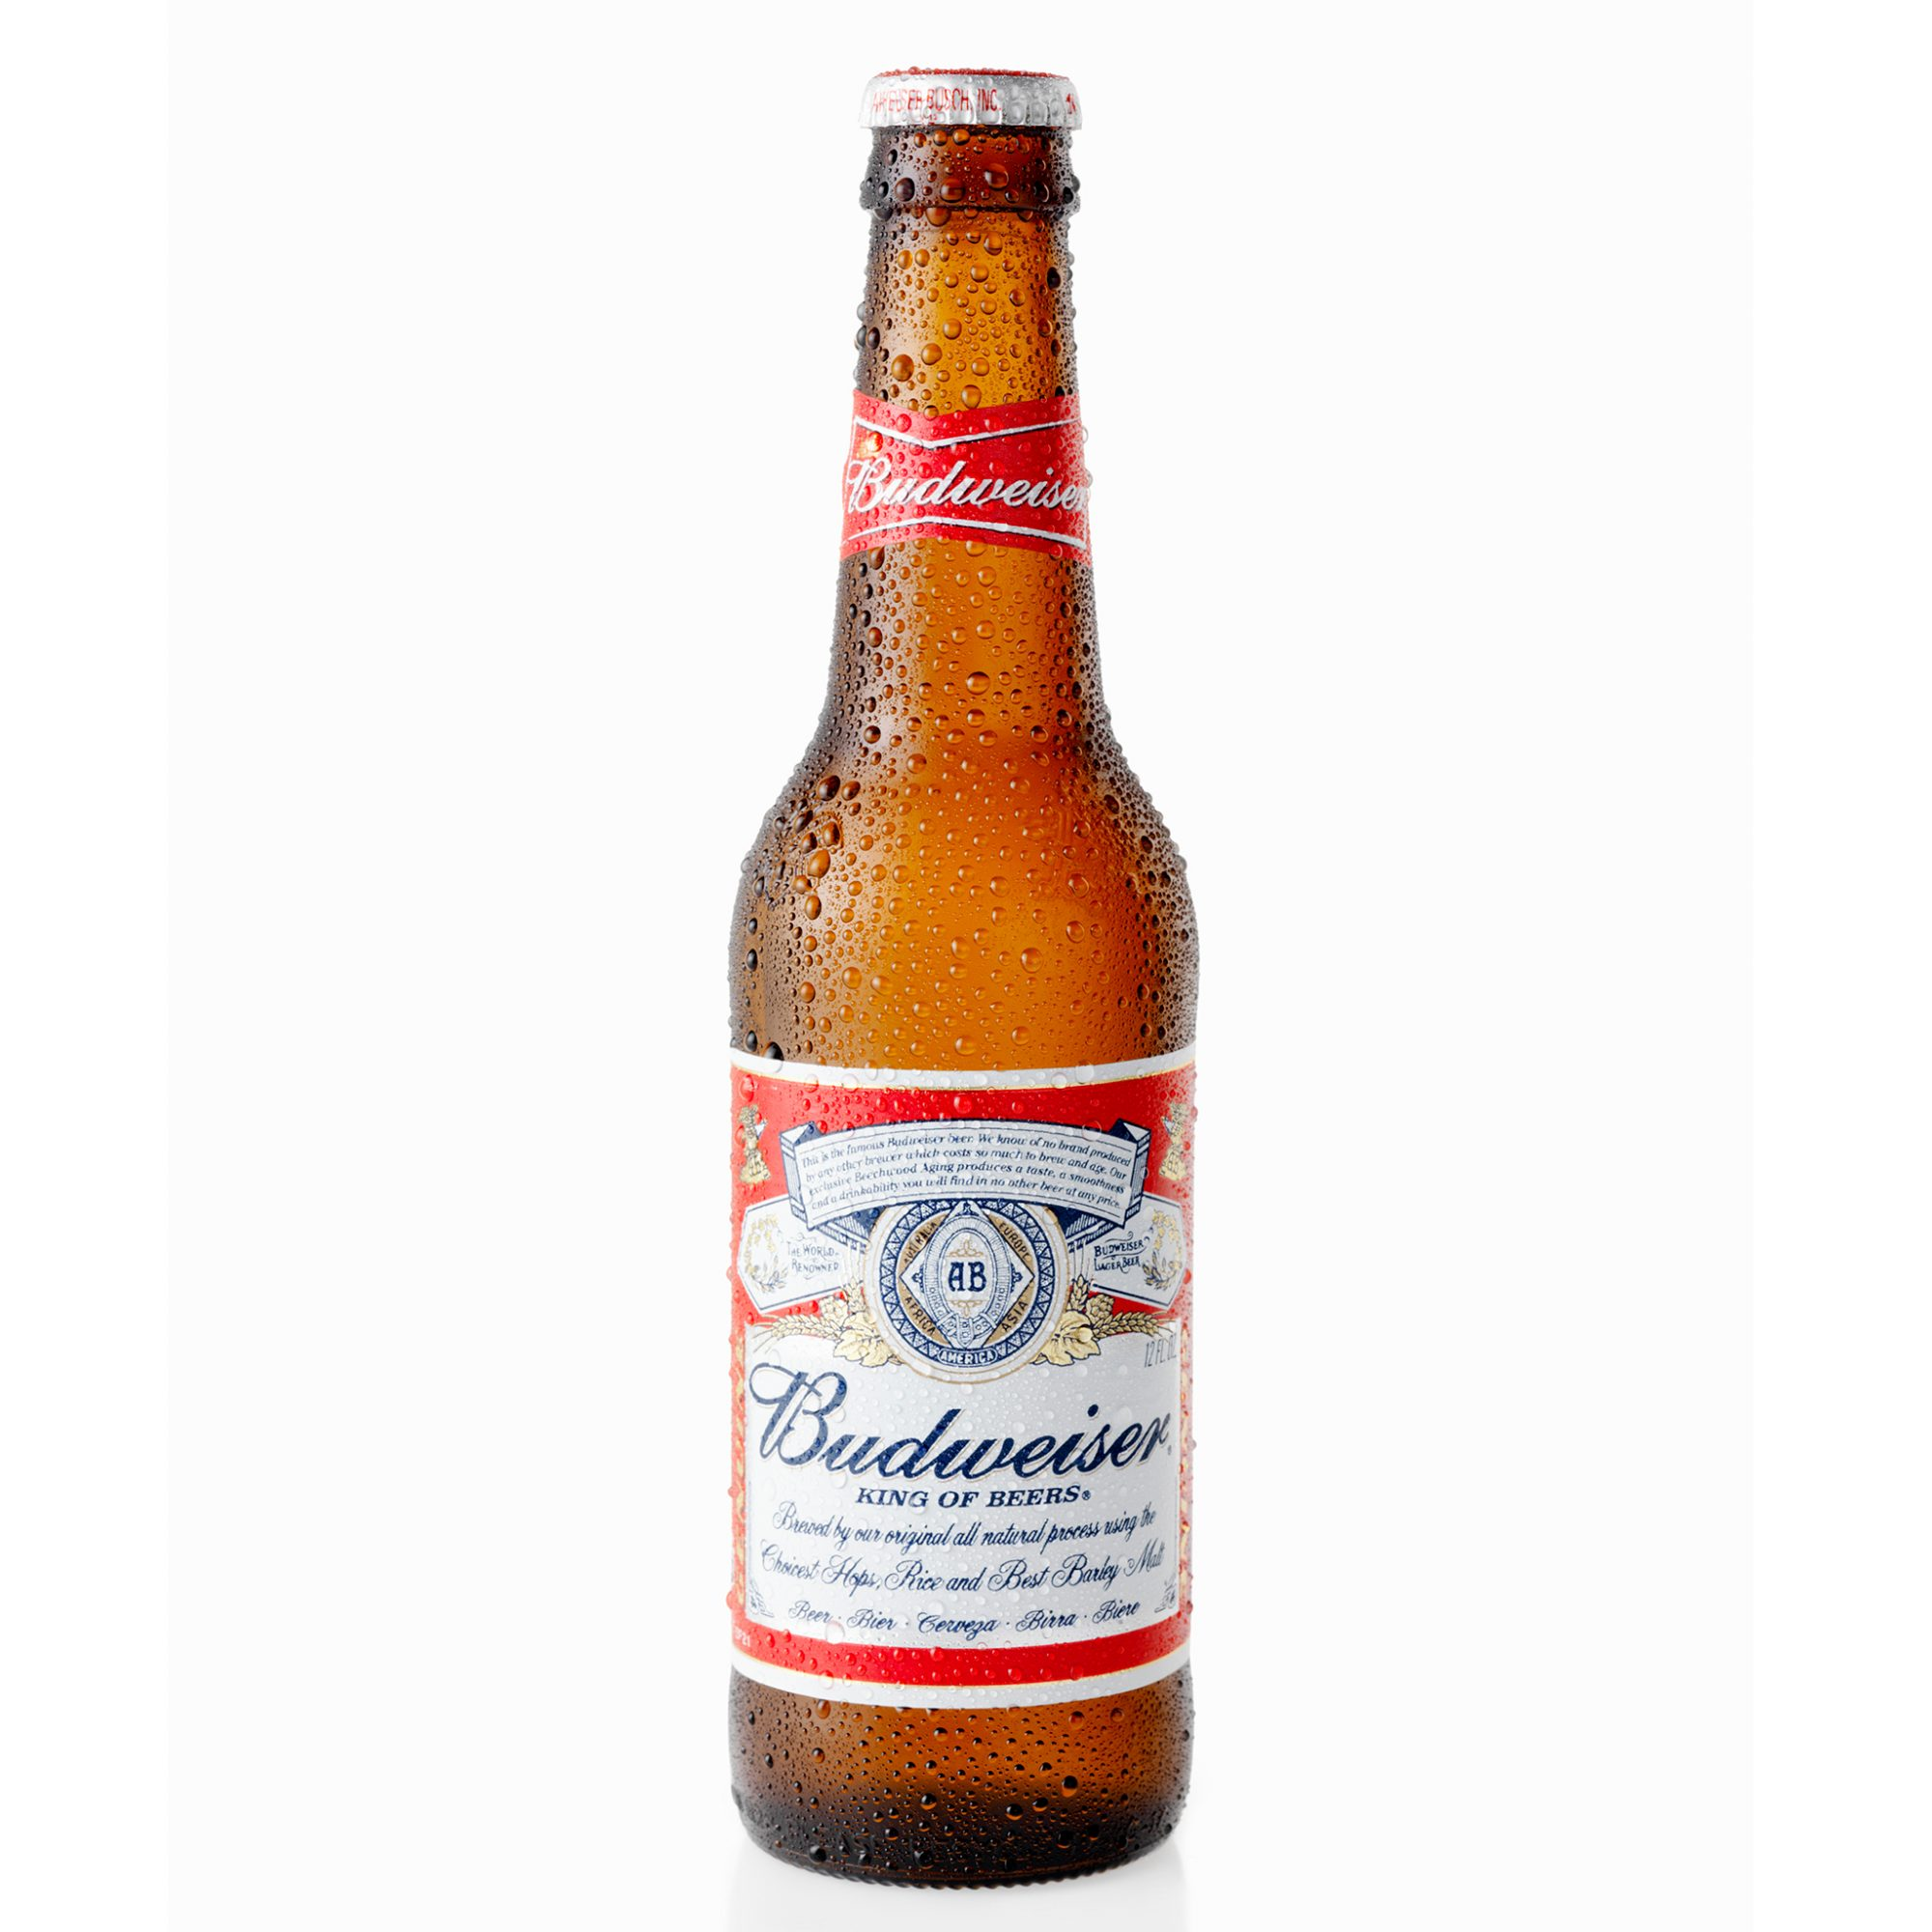 FWX ANHEUSER BUSCH TRYING TO BUY SAB MILLER_0